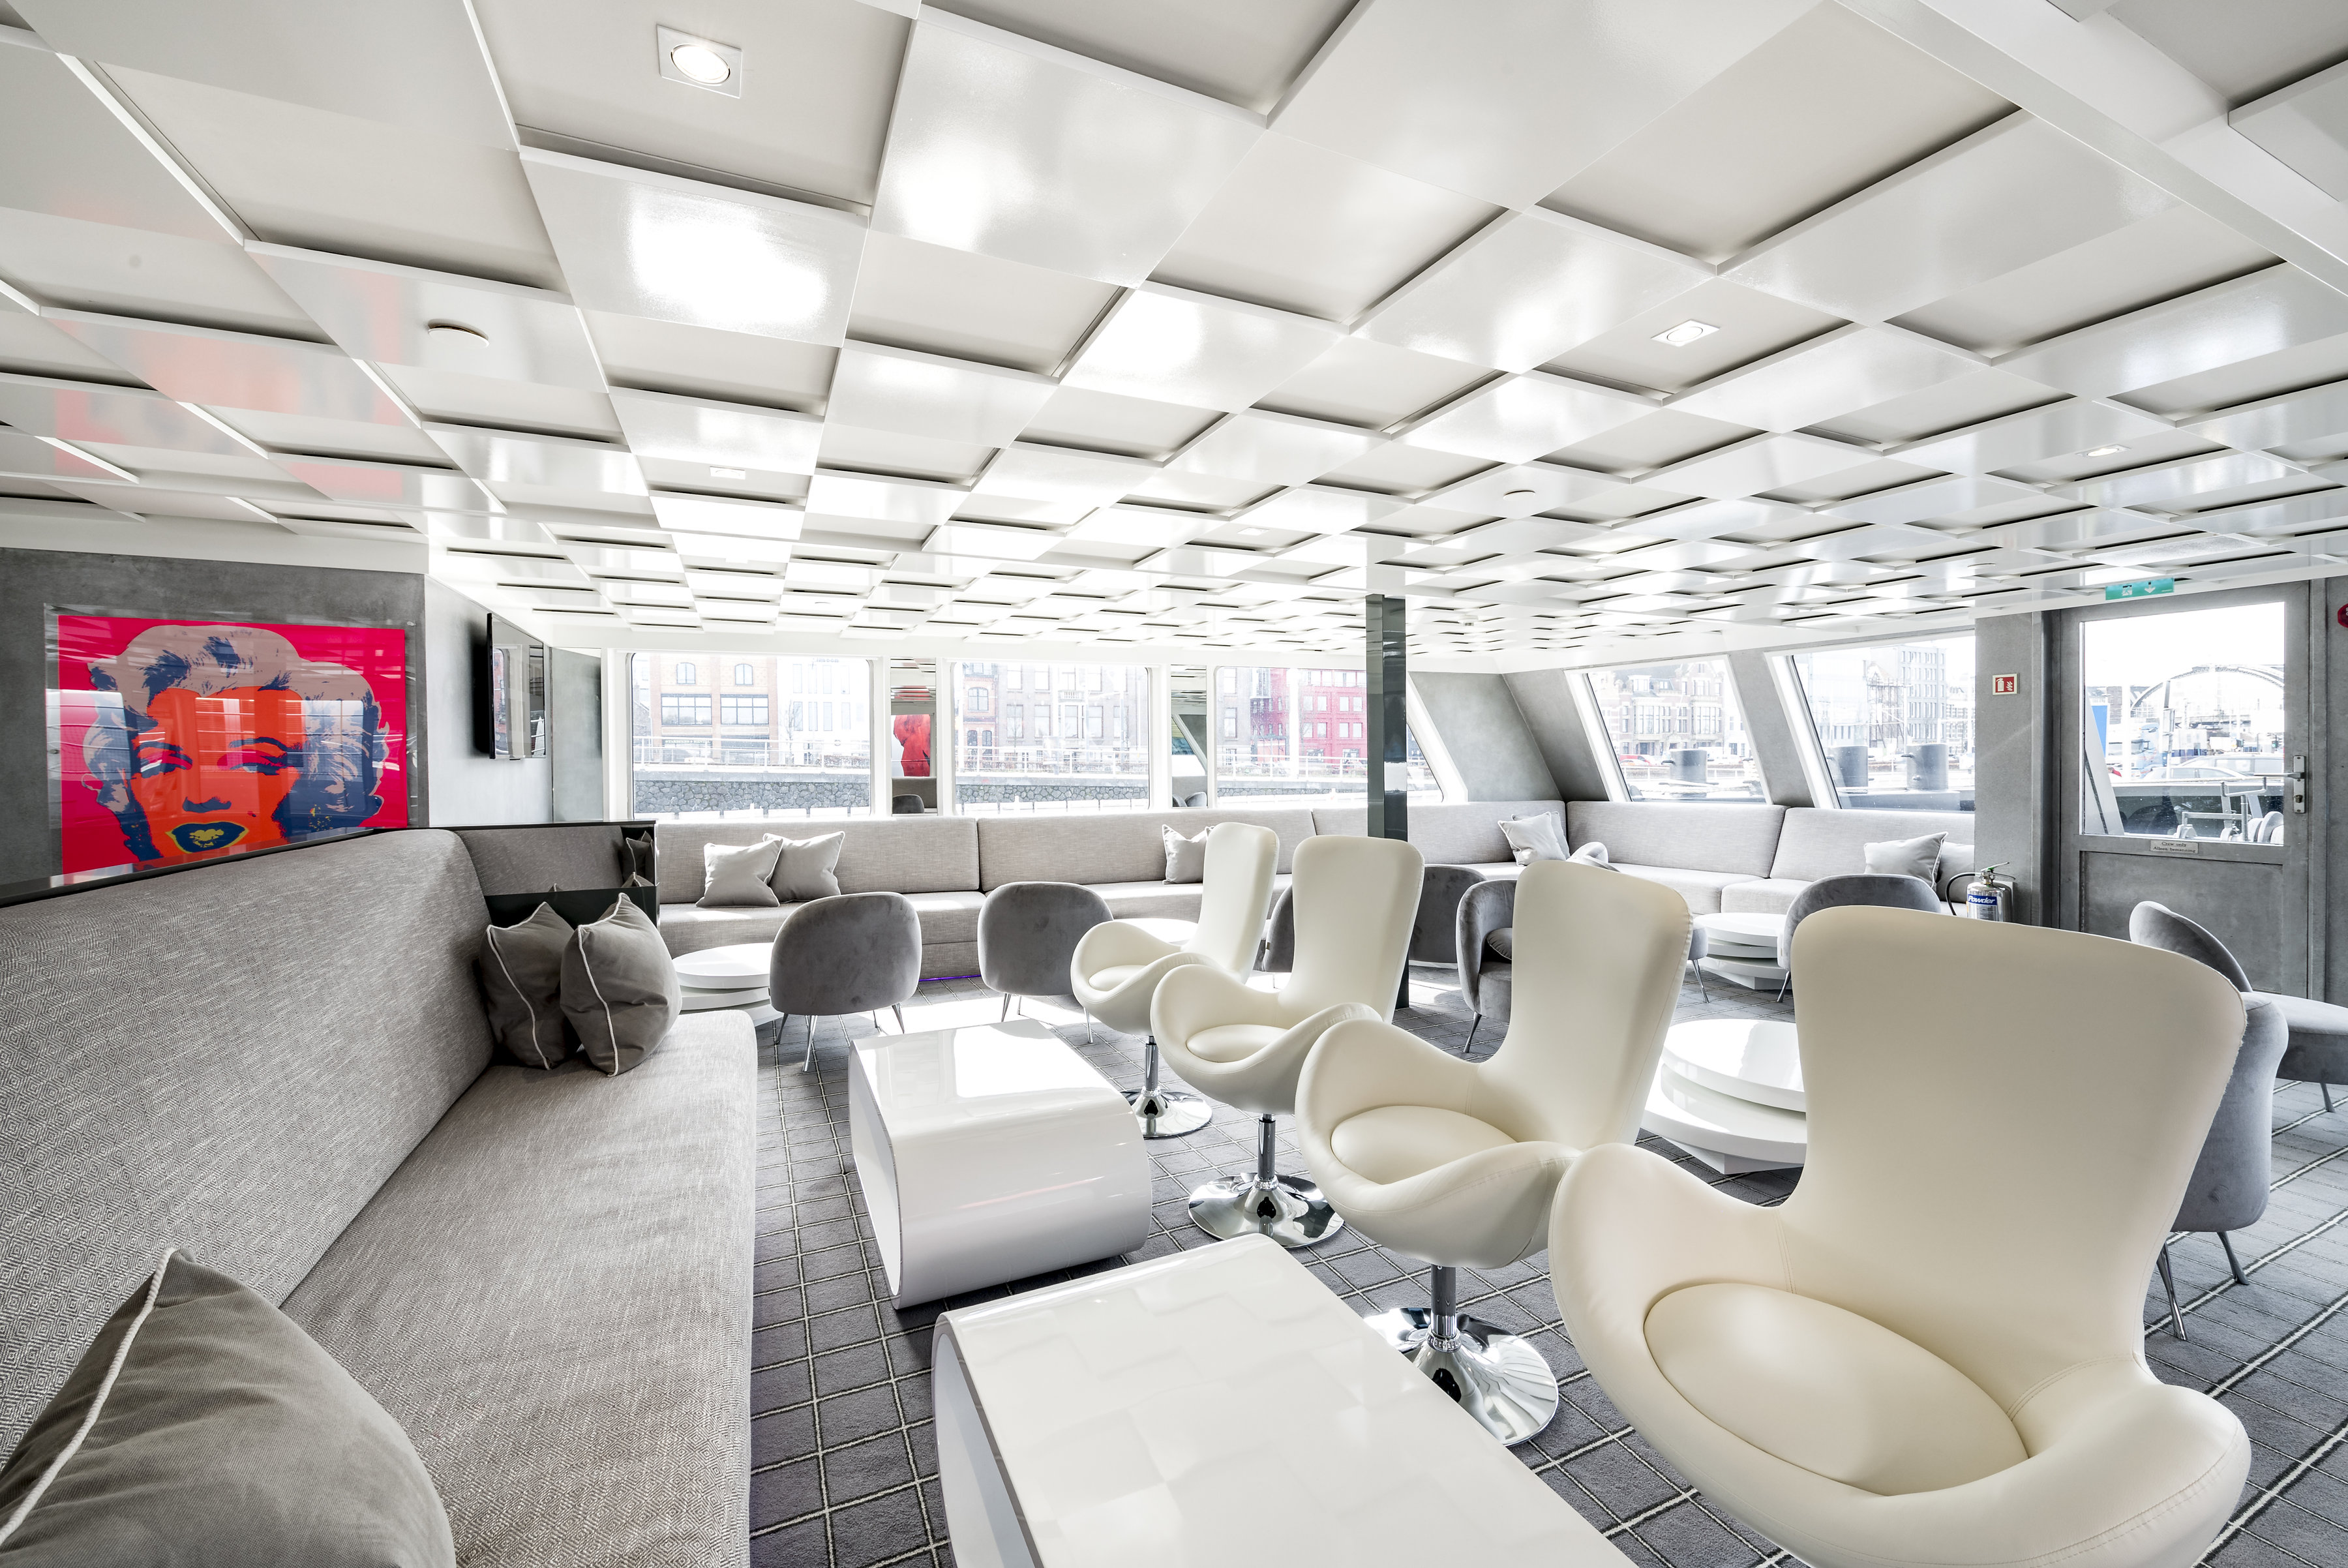 U by Uniworld The A cruise ship review - Cruise International